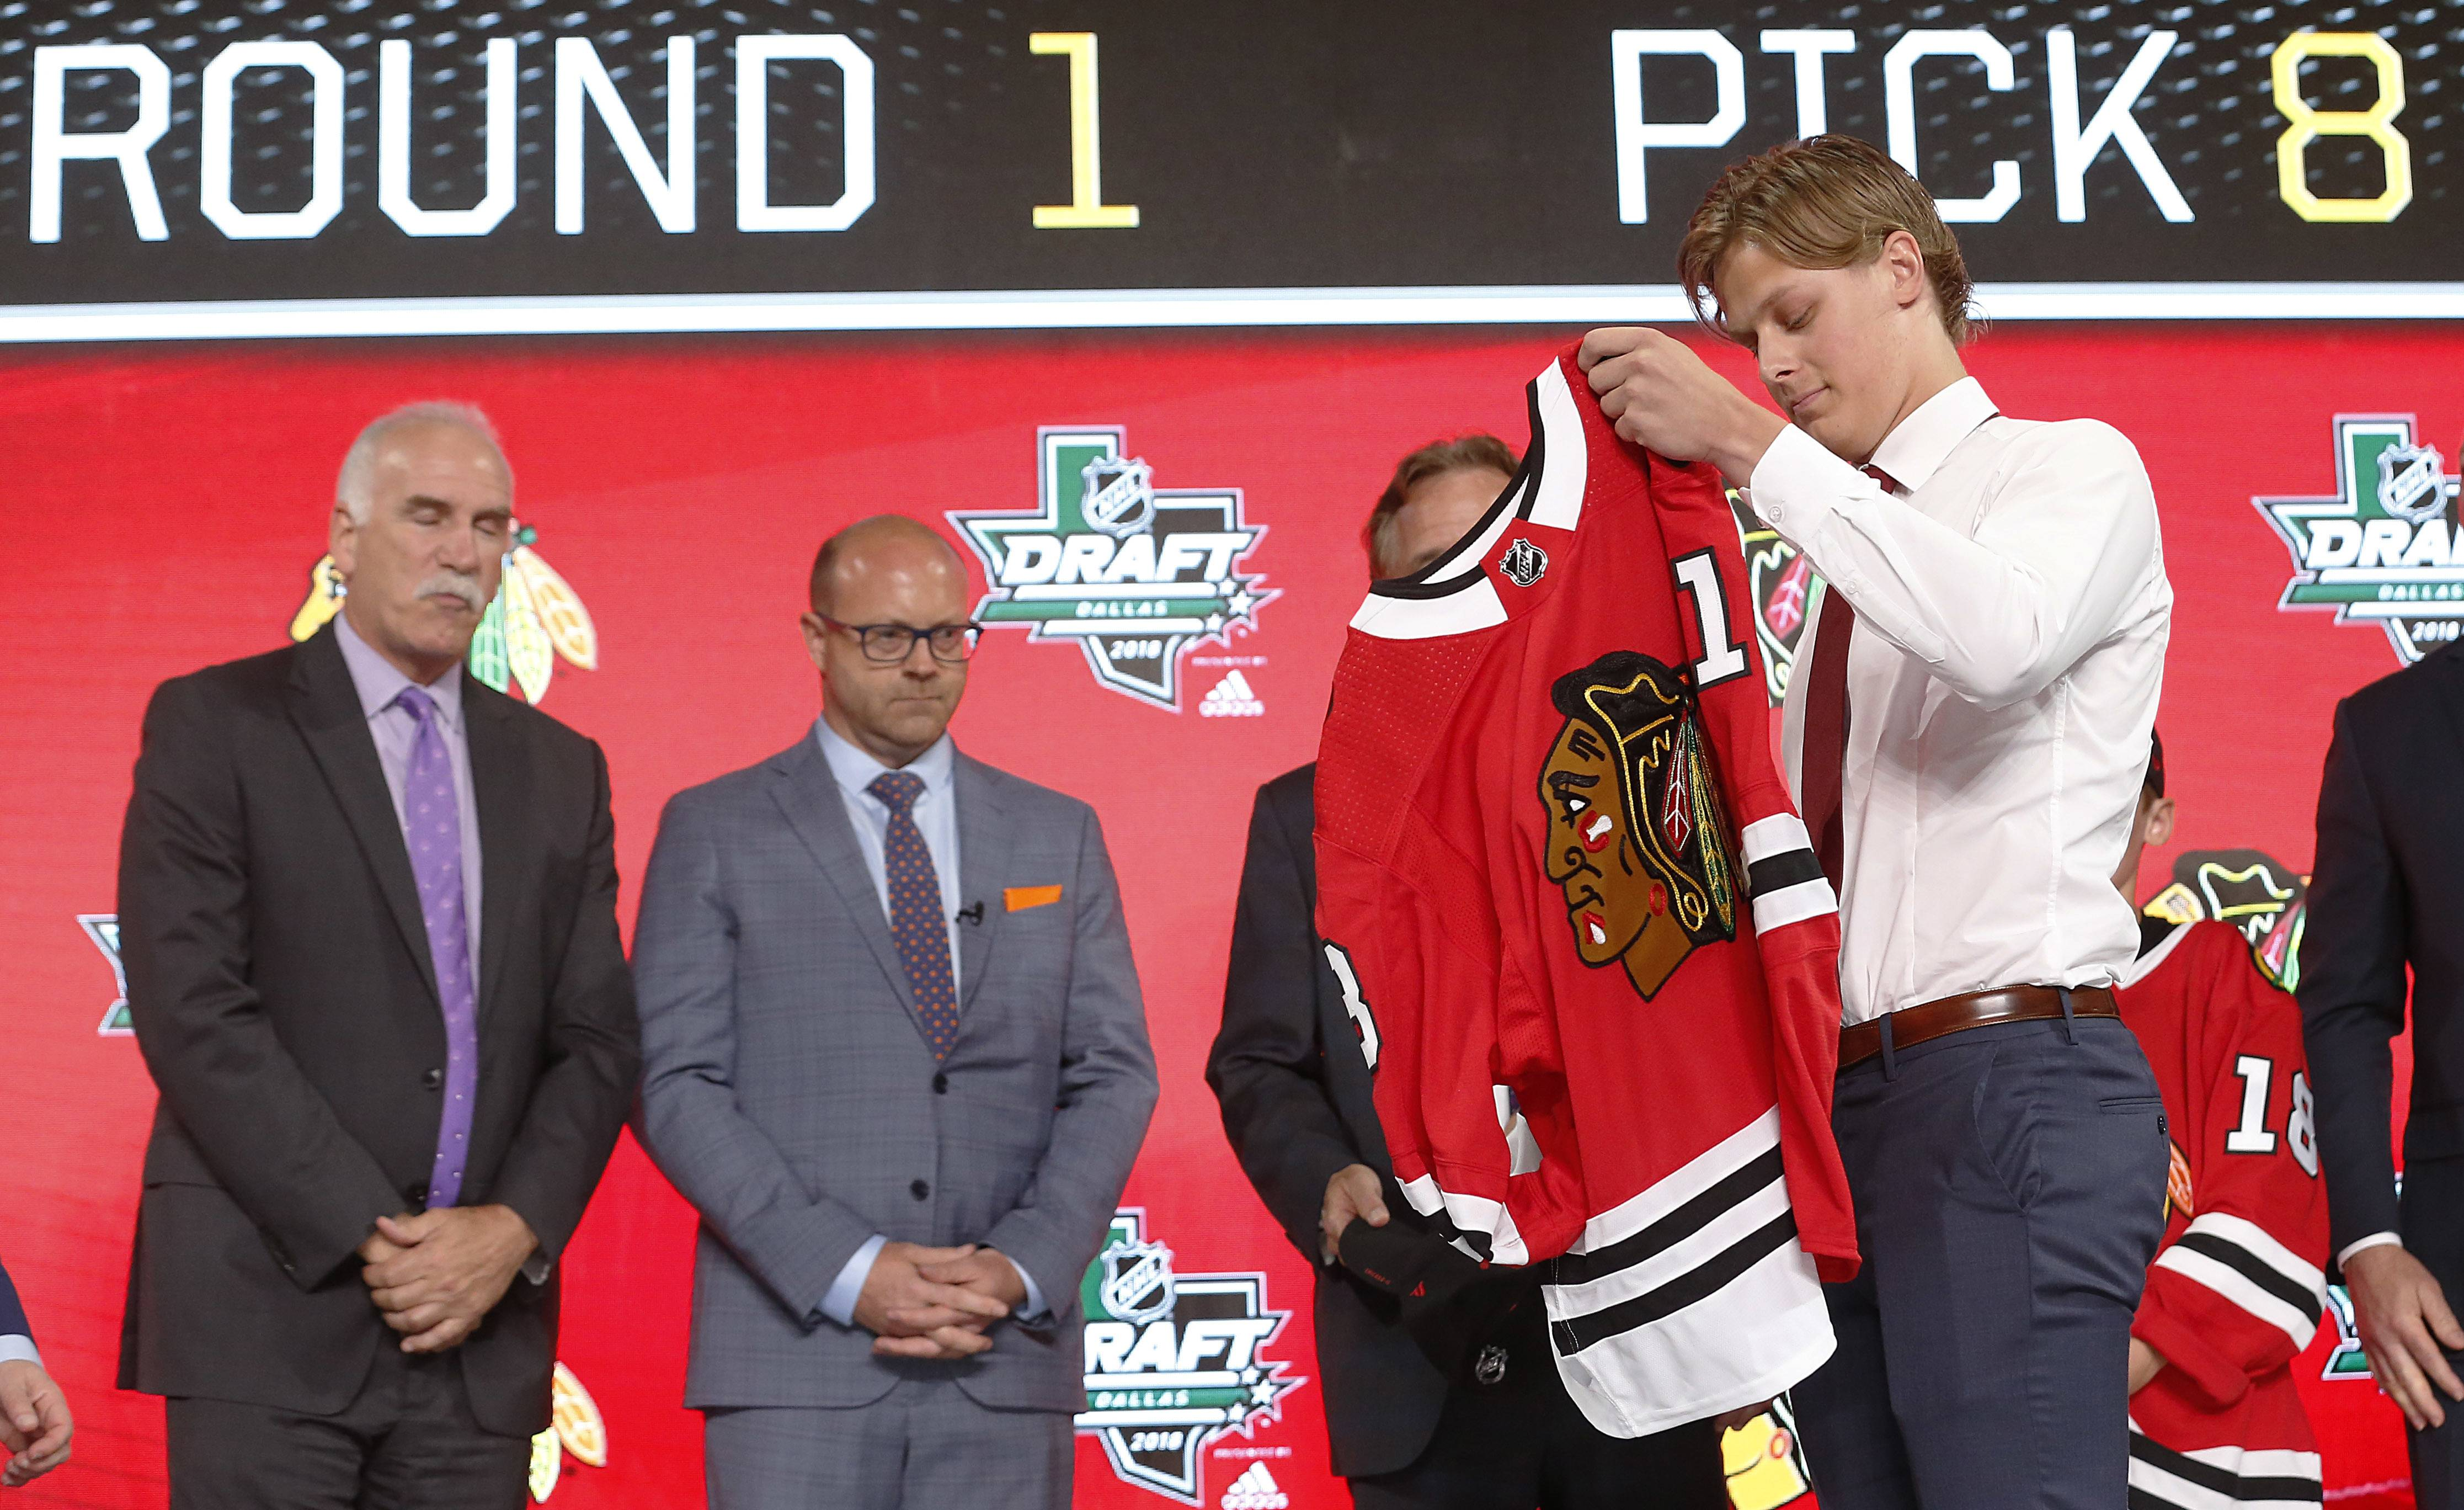 Adam Boqvist tries on a Blackhawks jersey after being selected in the June draft. Coach Joel Quenneville and General Manager Stan Bowman are at left.